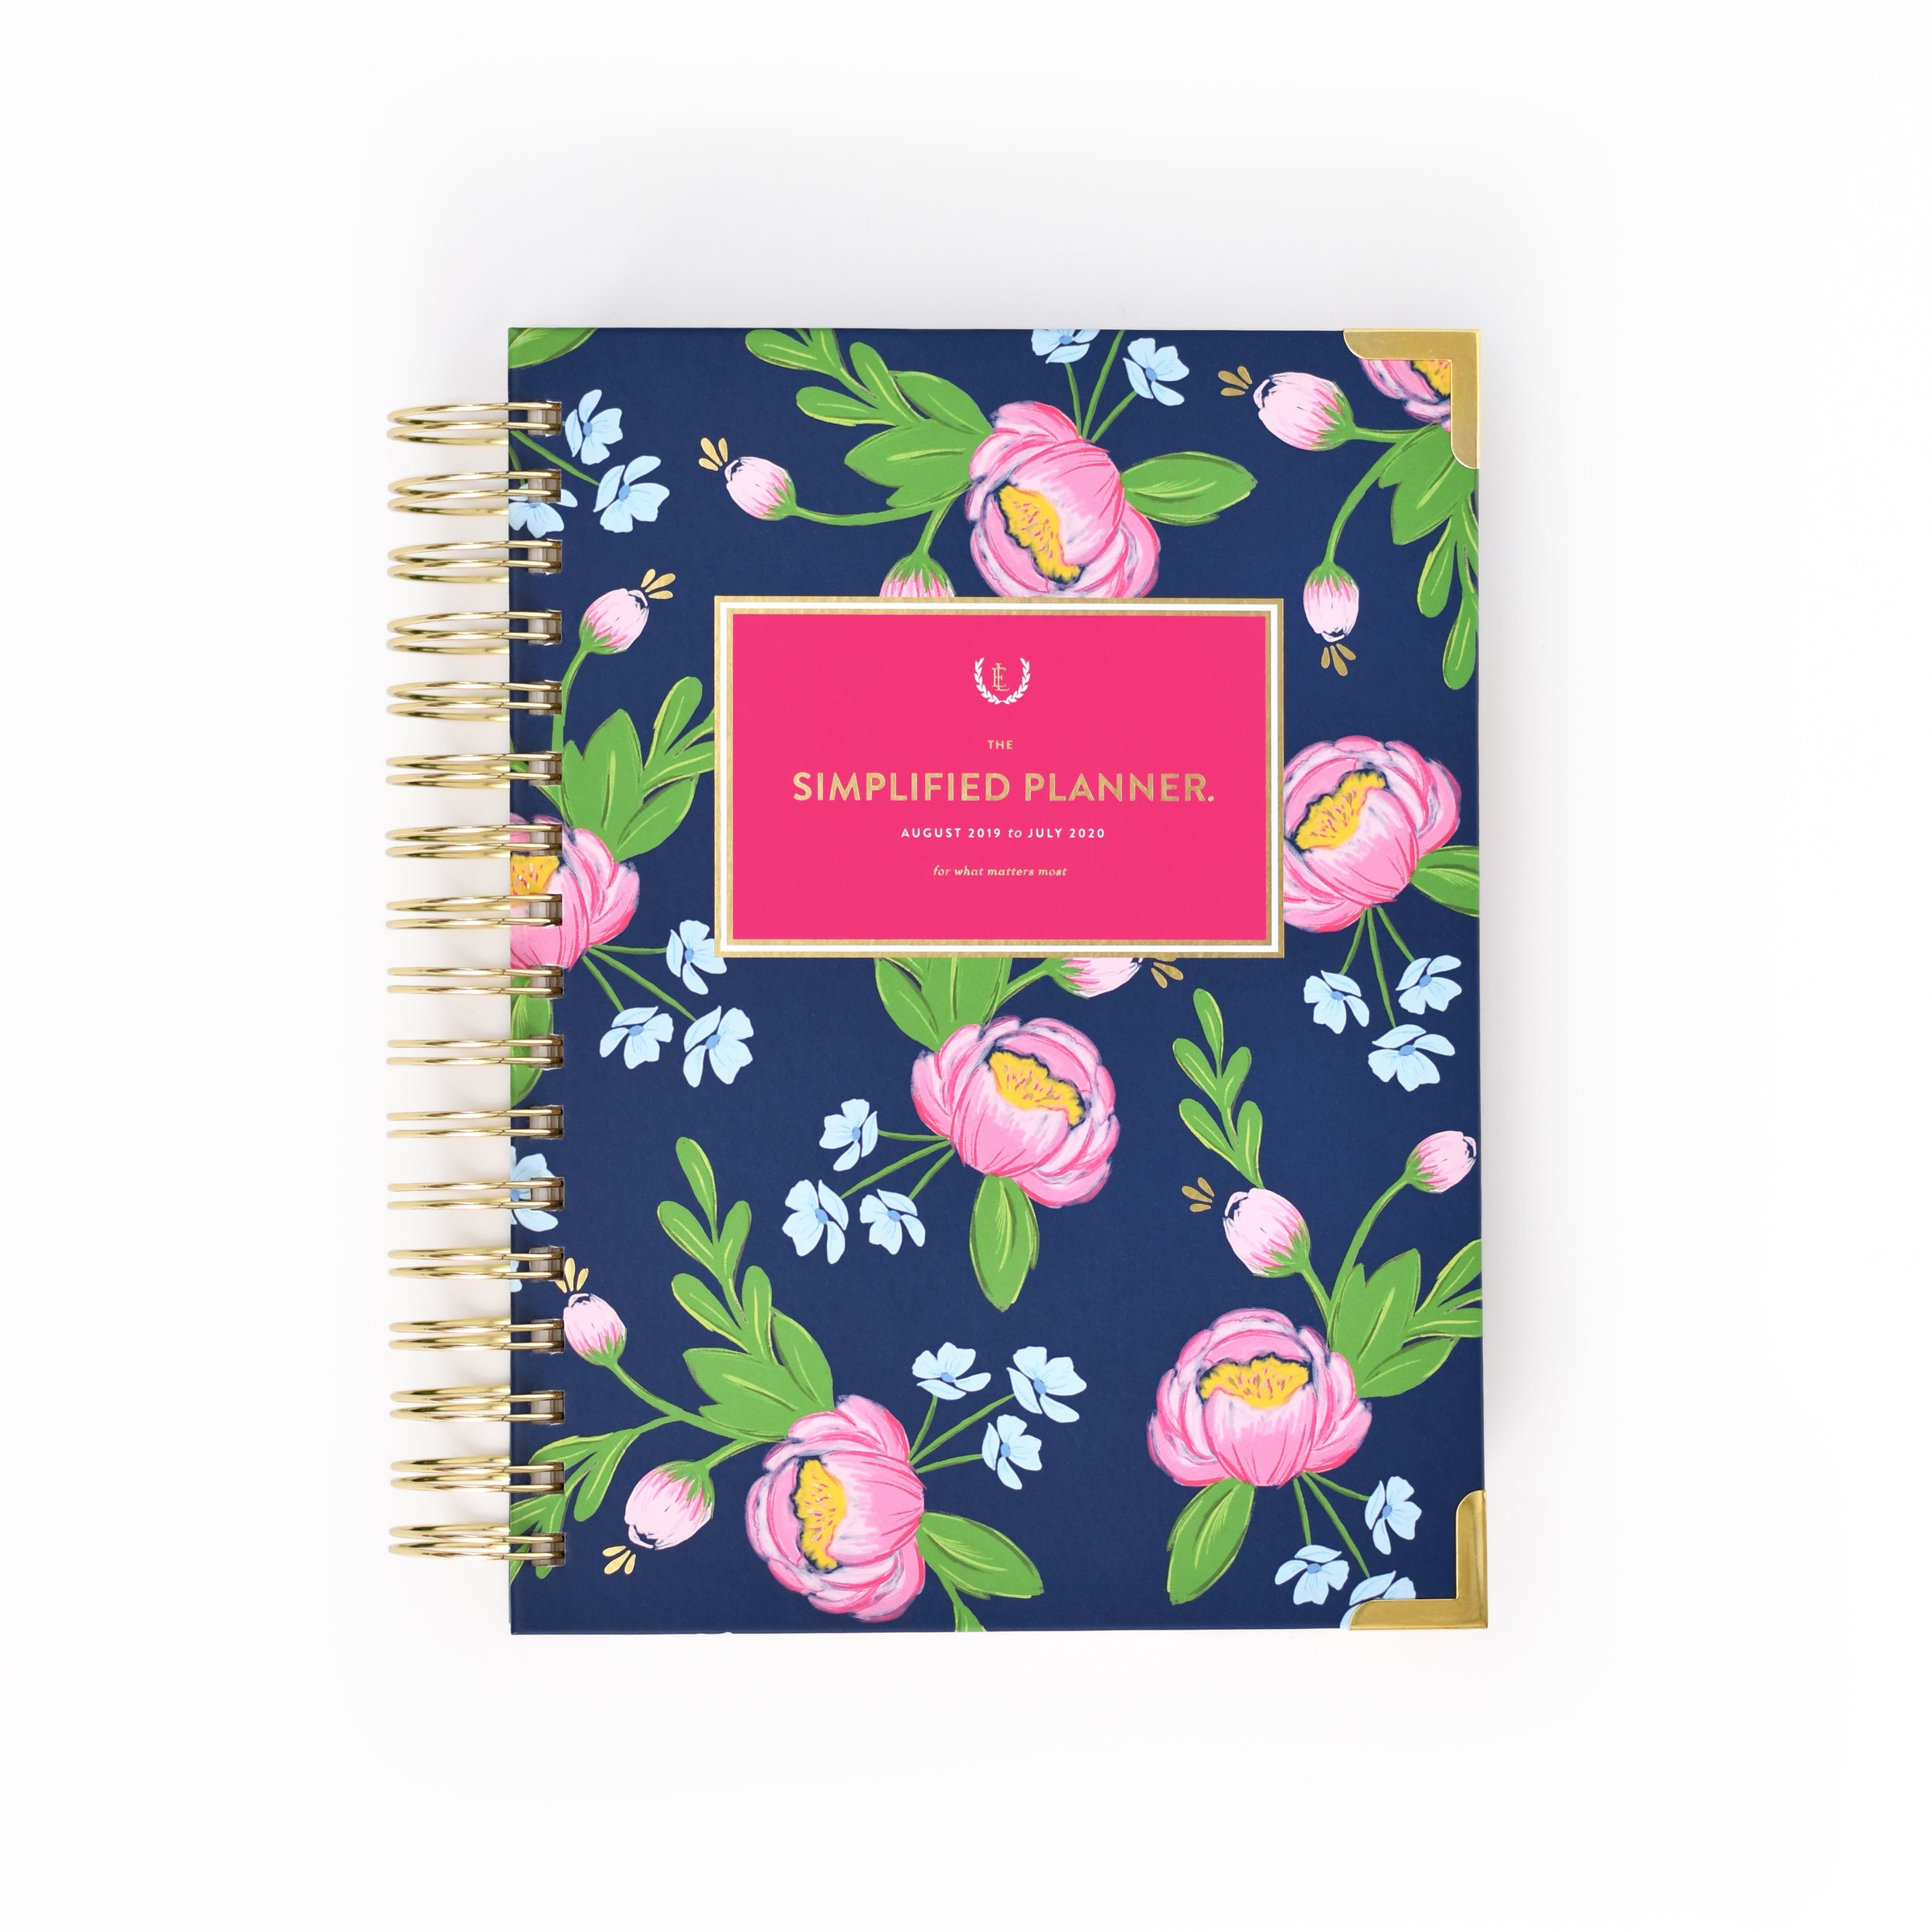 Navy Blooms Daily Simplified Planner | $58 -